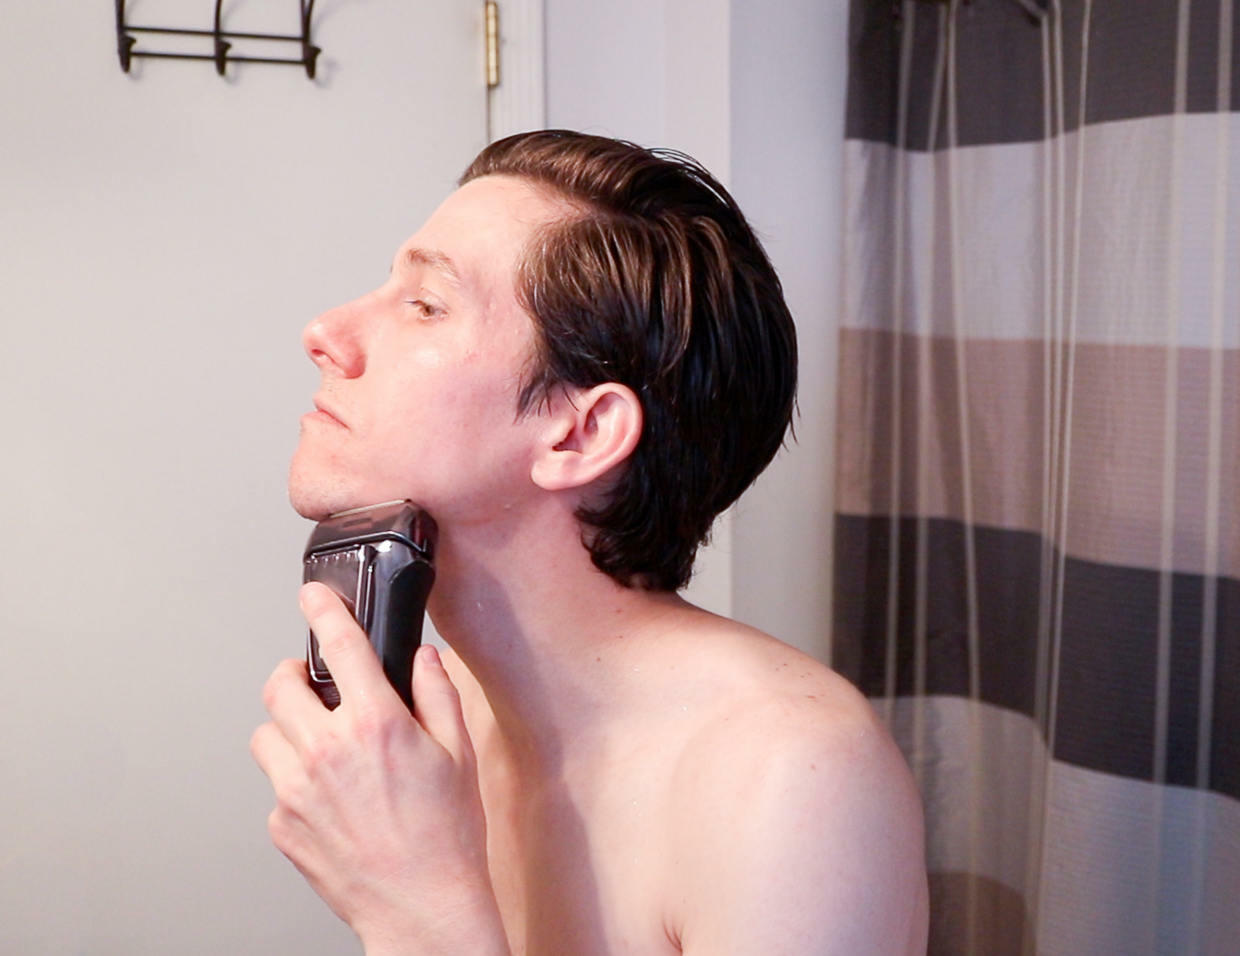 Use an electric shaver